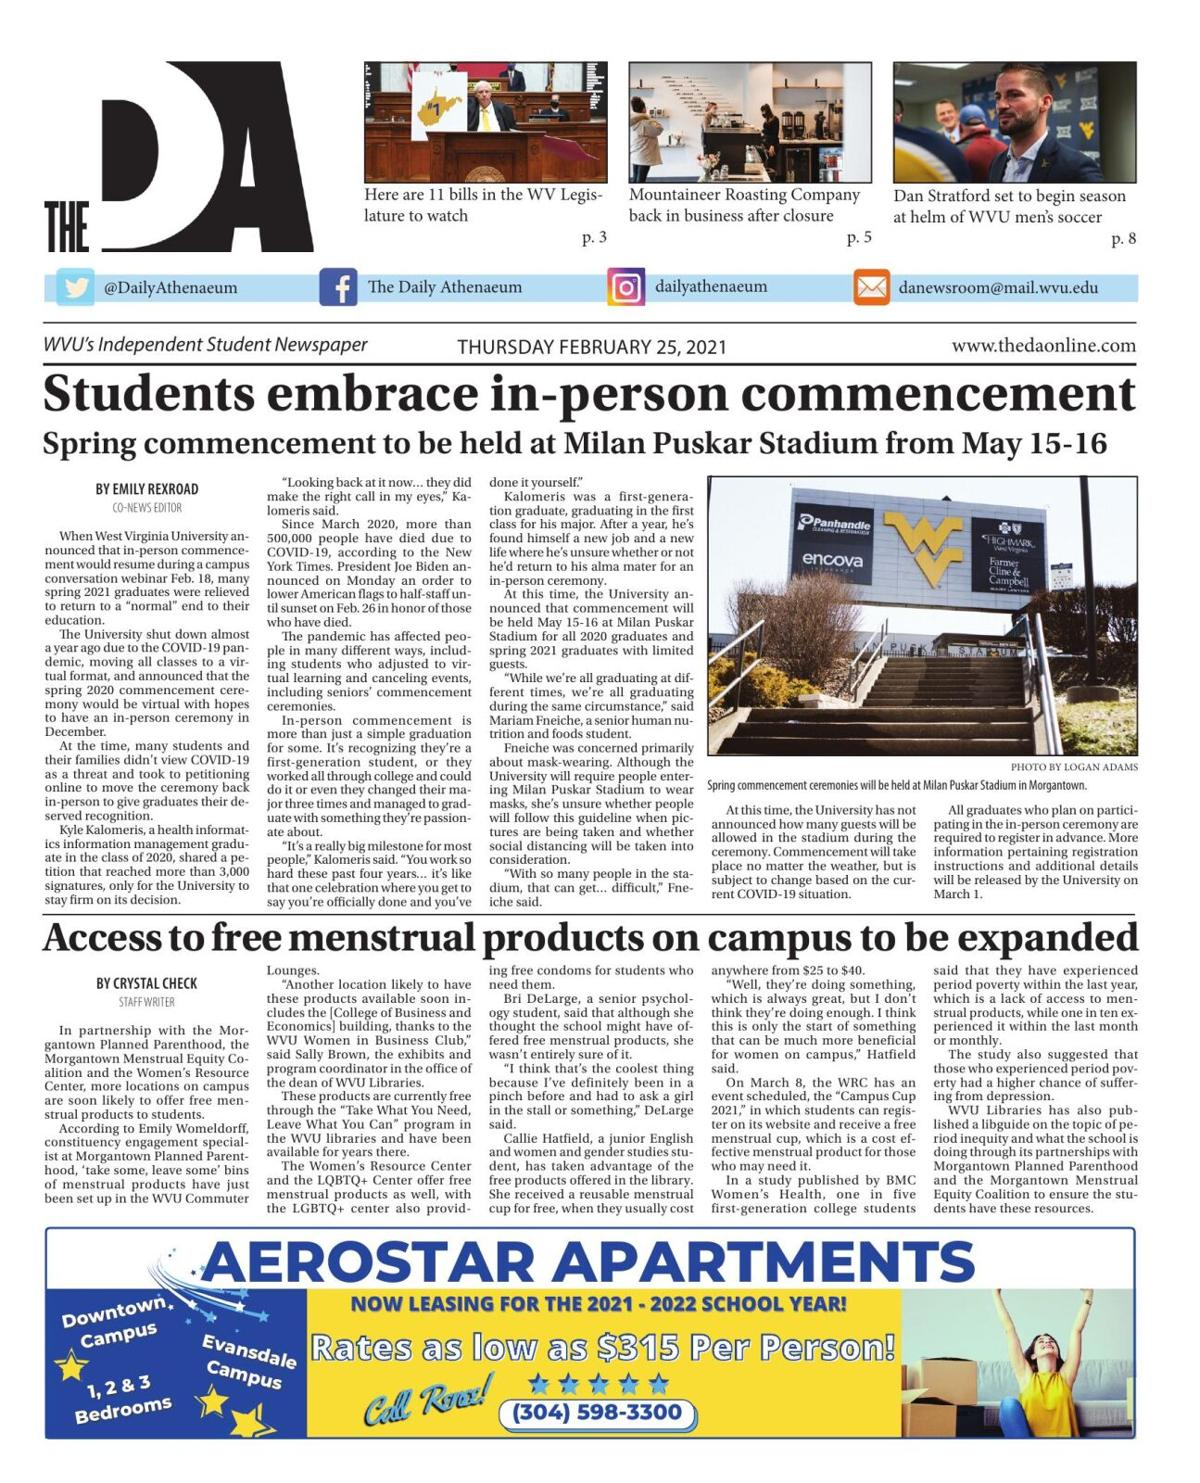 The Daily Athenaeum's edition on February 25, 2021.